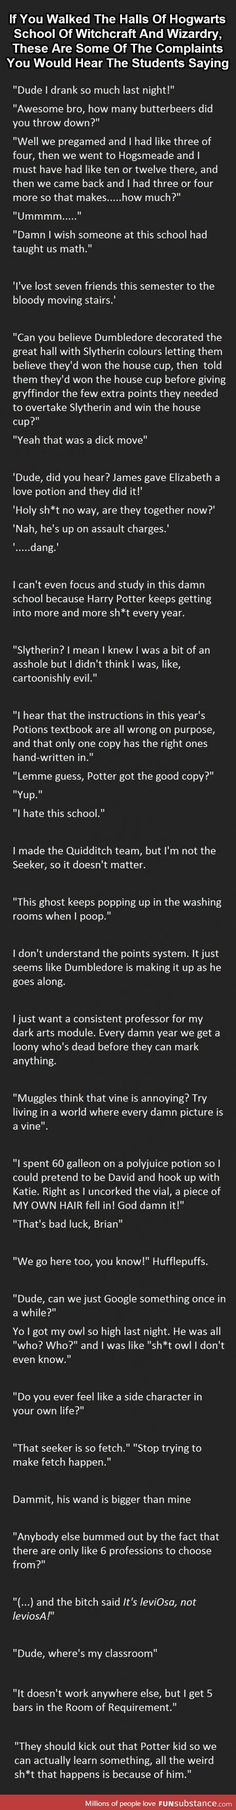 Things you'd hear at Hogwarts